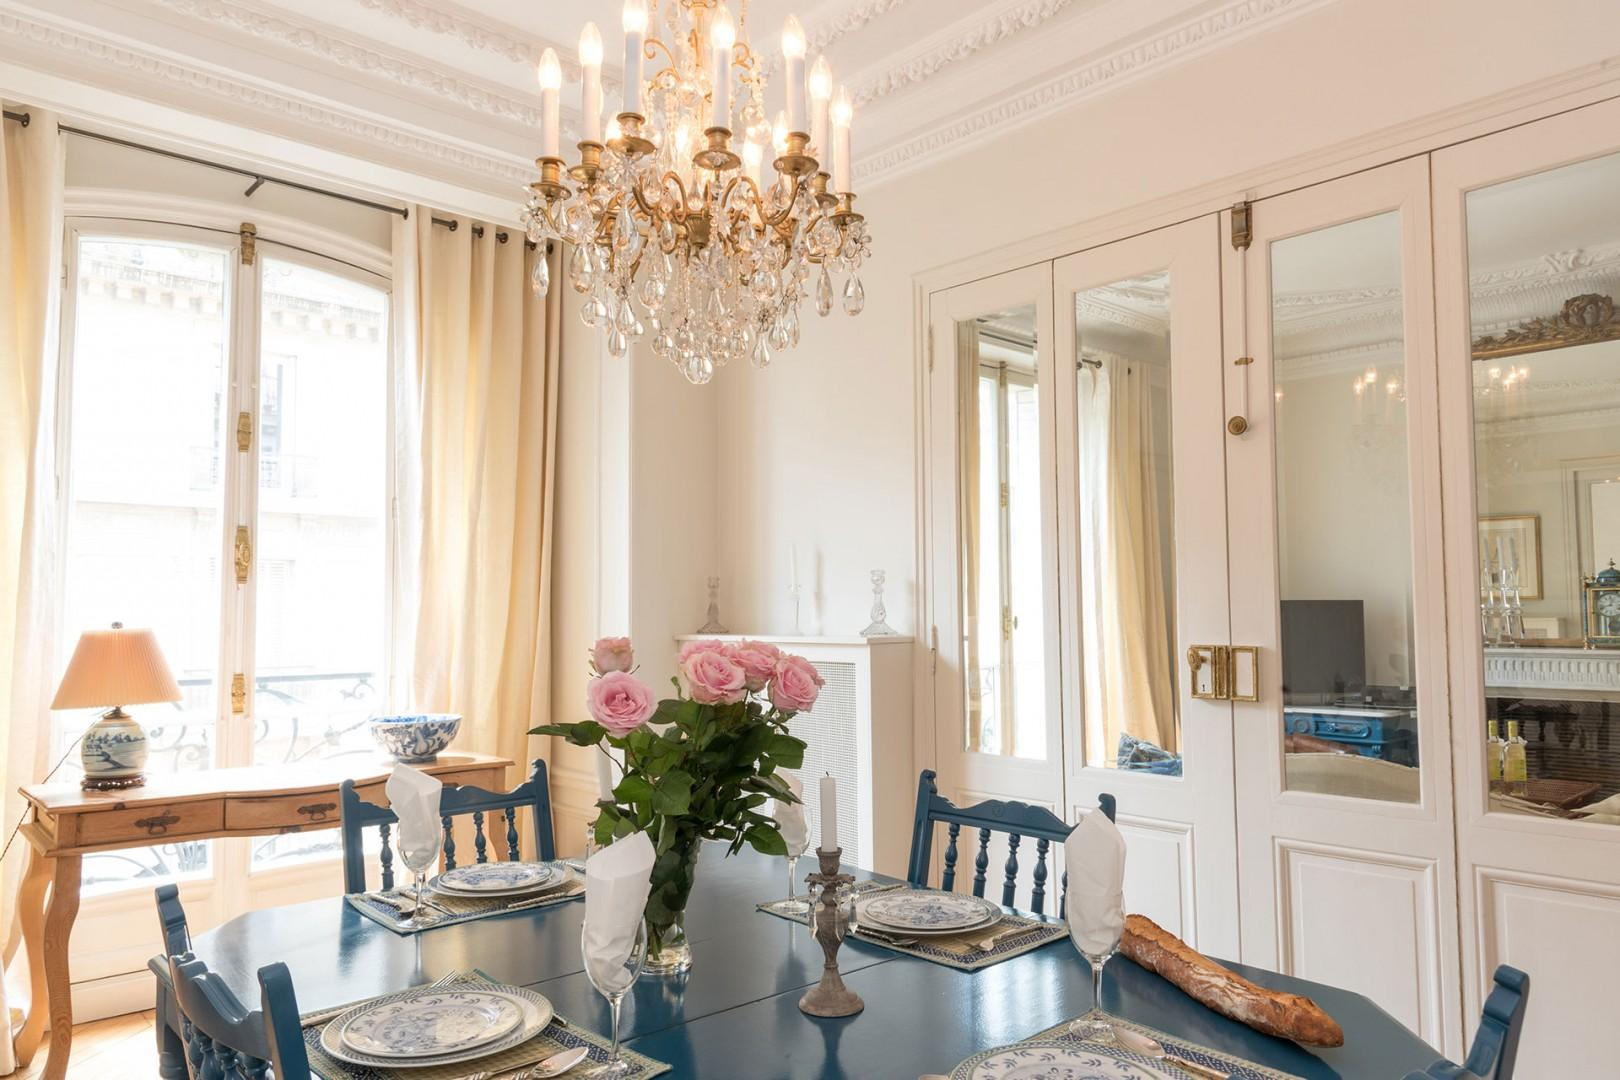 The dining room is separated from the living room with double glass doors.